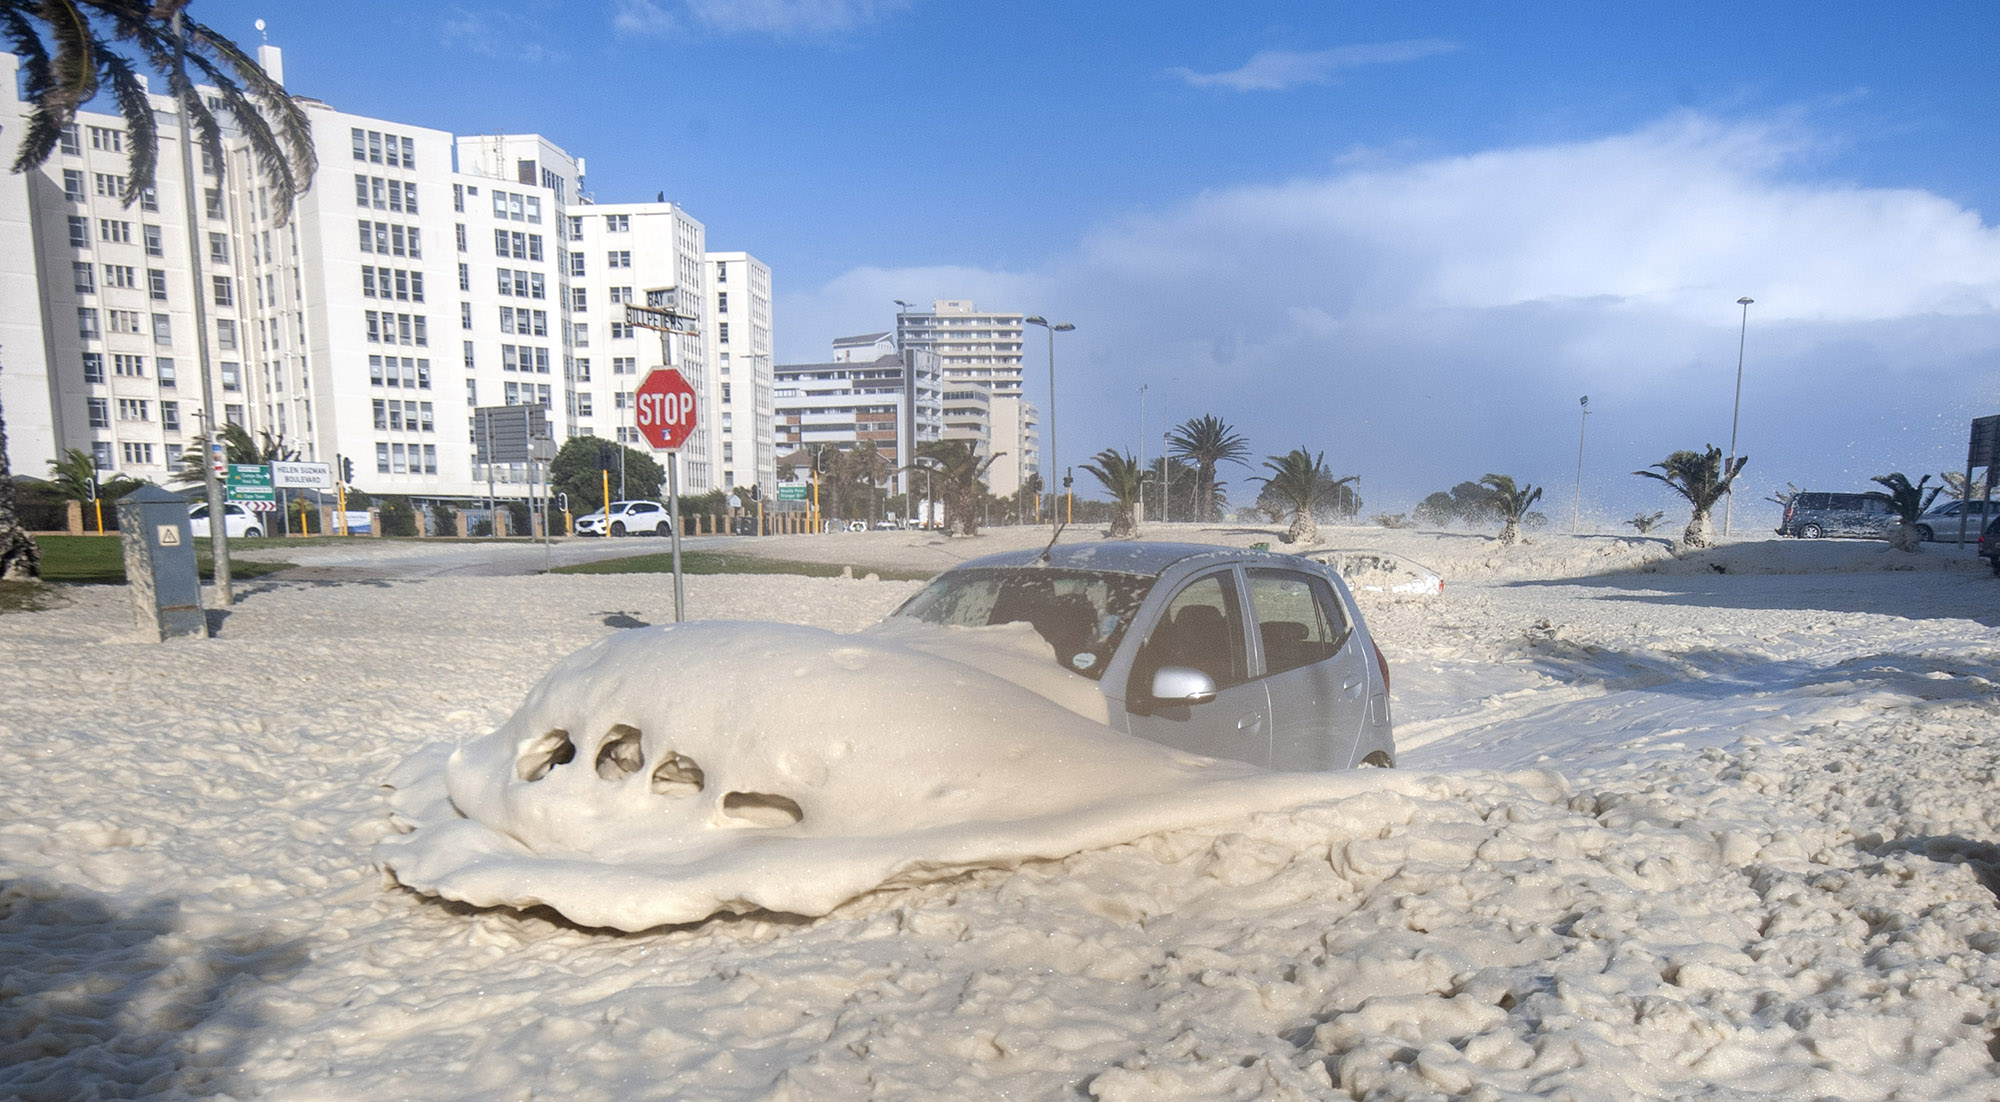 VISUAL ESSAY: Mean Monday: Another vicious winter storm surges through city of Cape Town